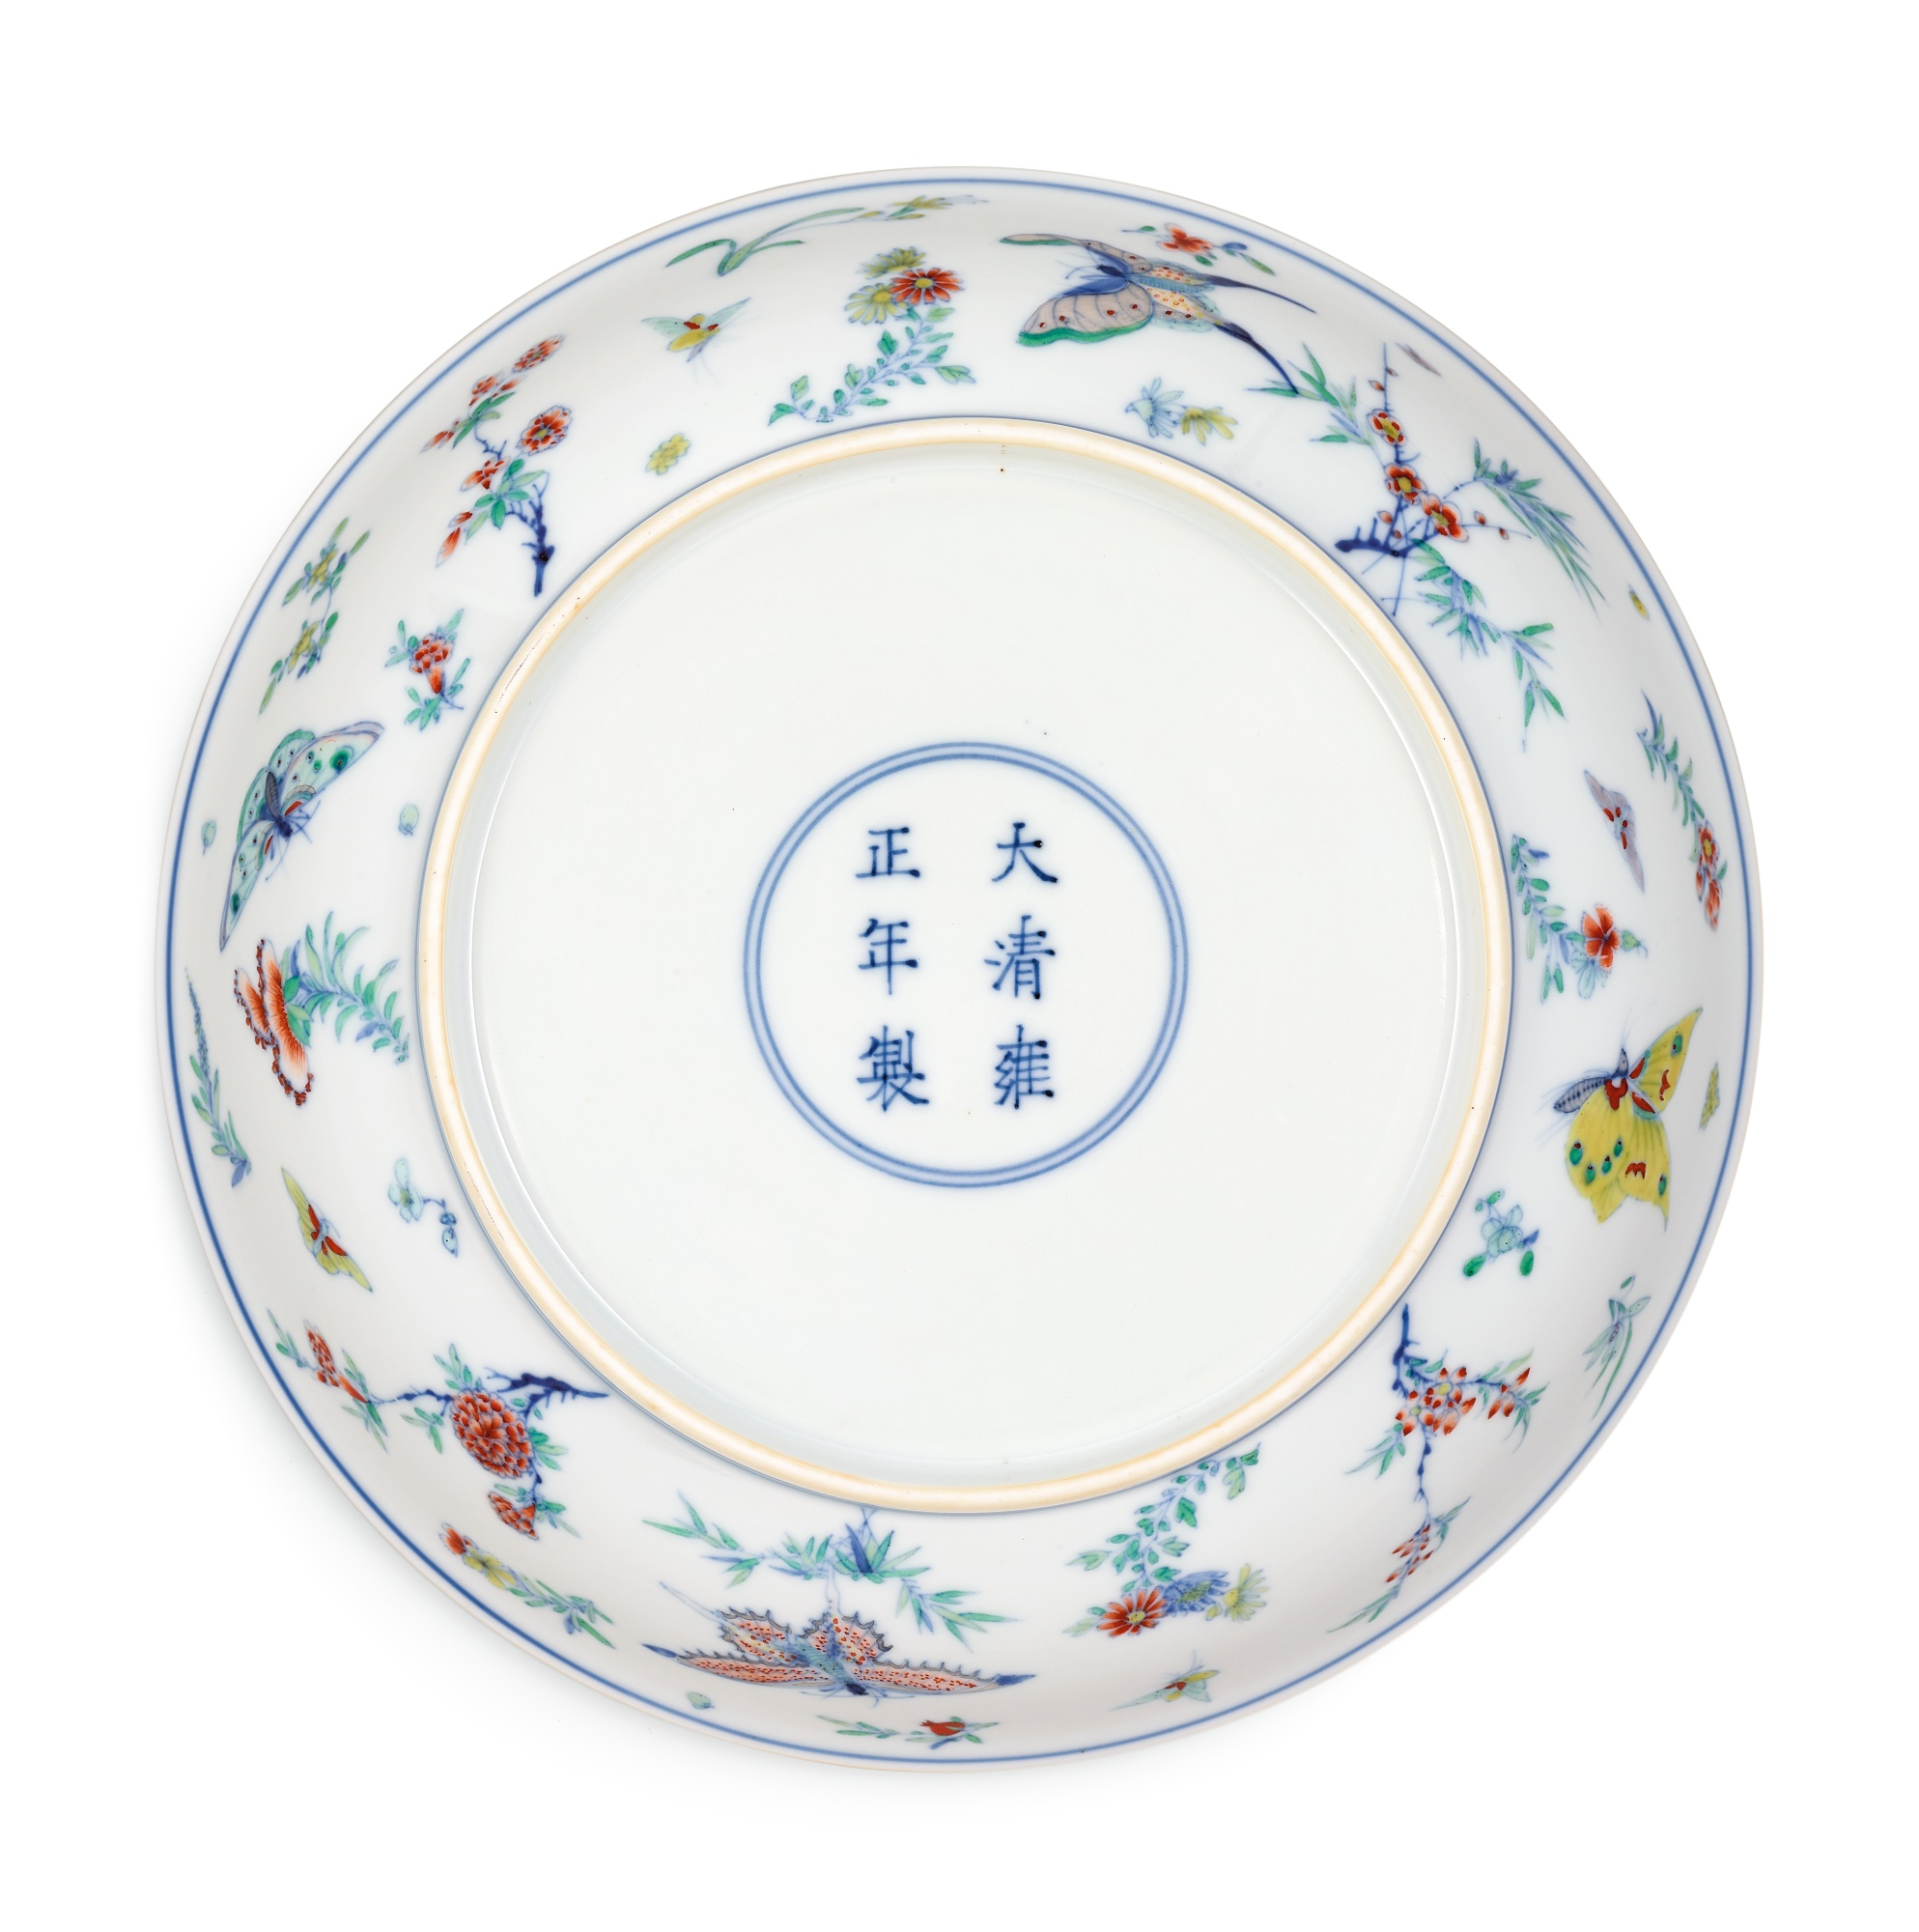 A fine and rare doucai 'butterfly' dish, mark and period of